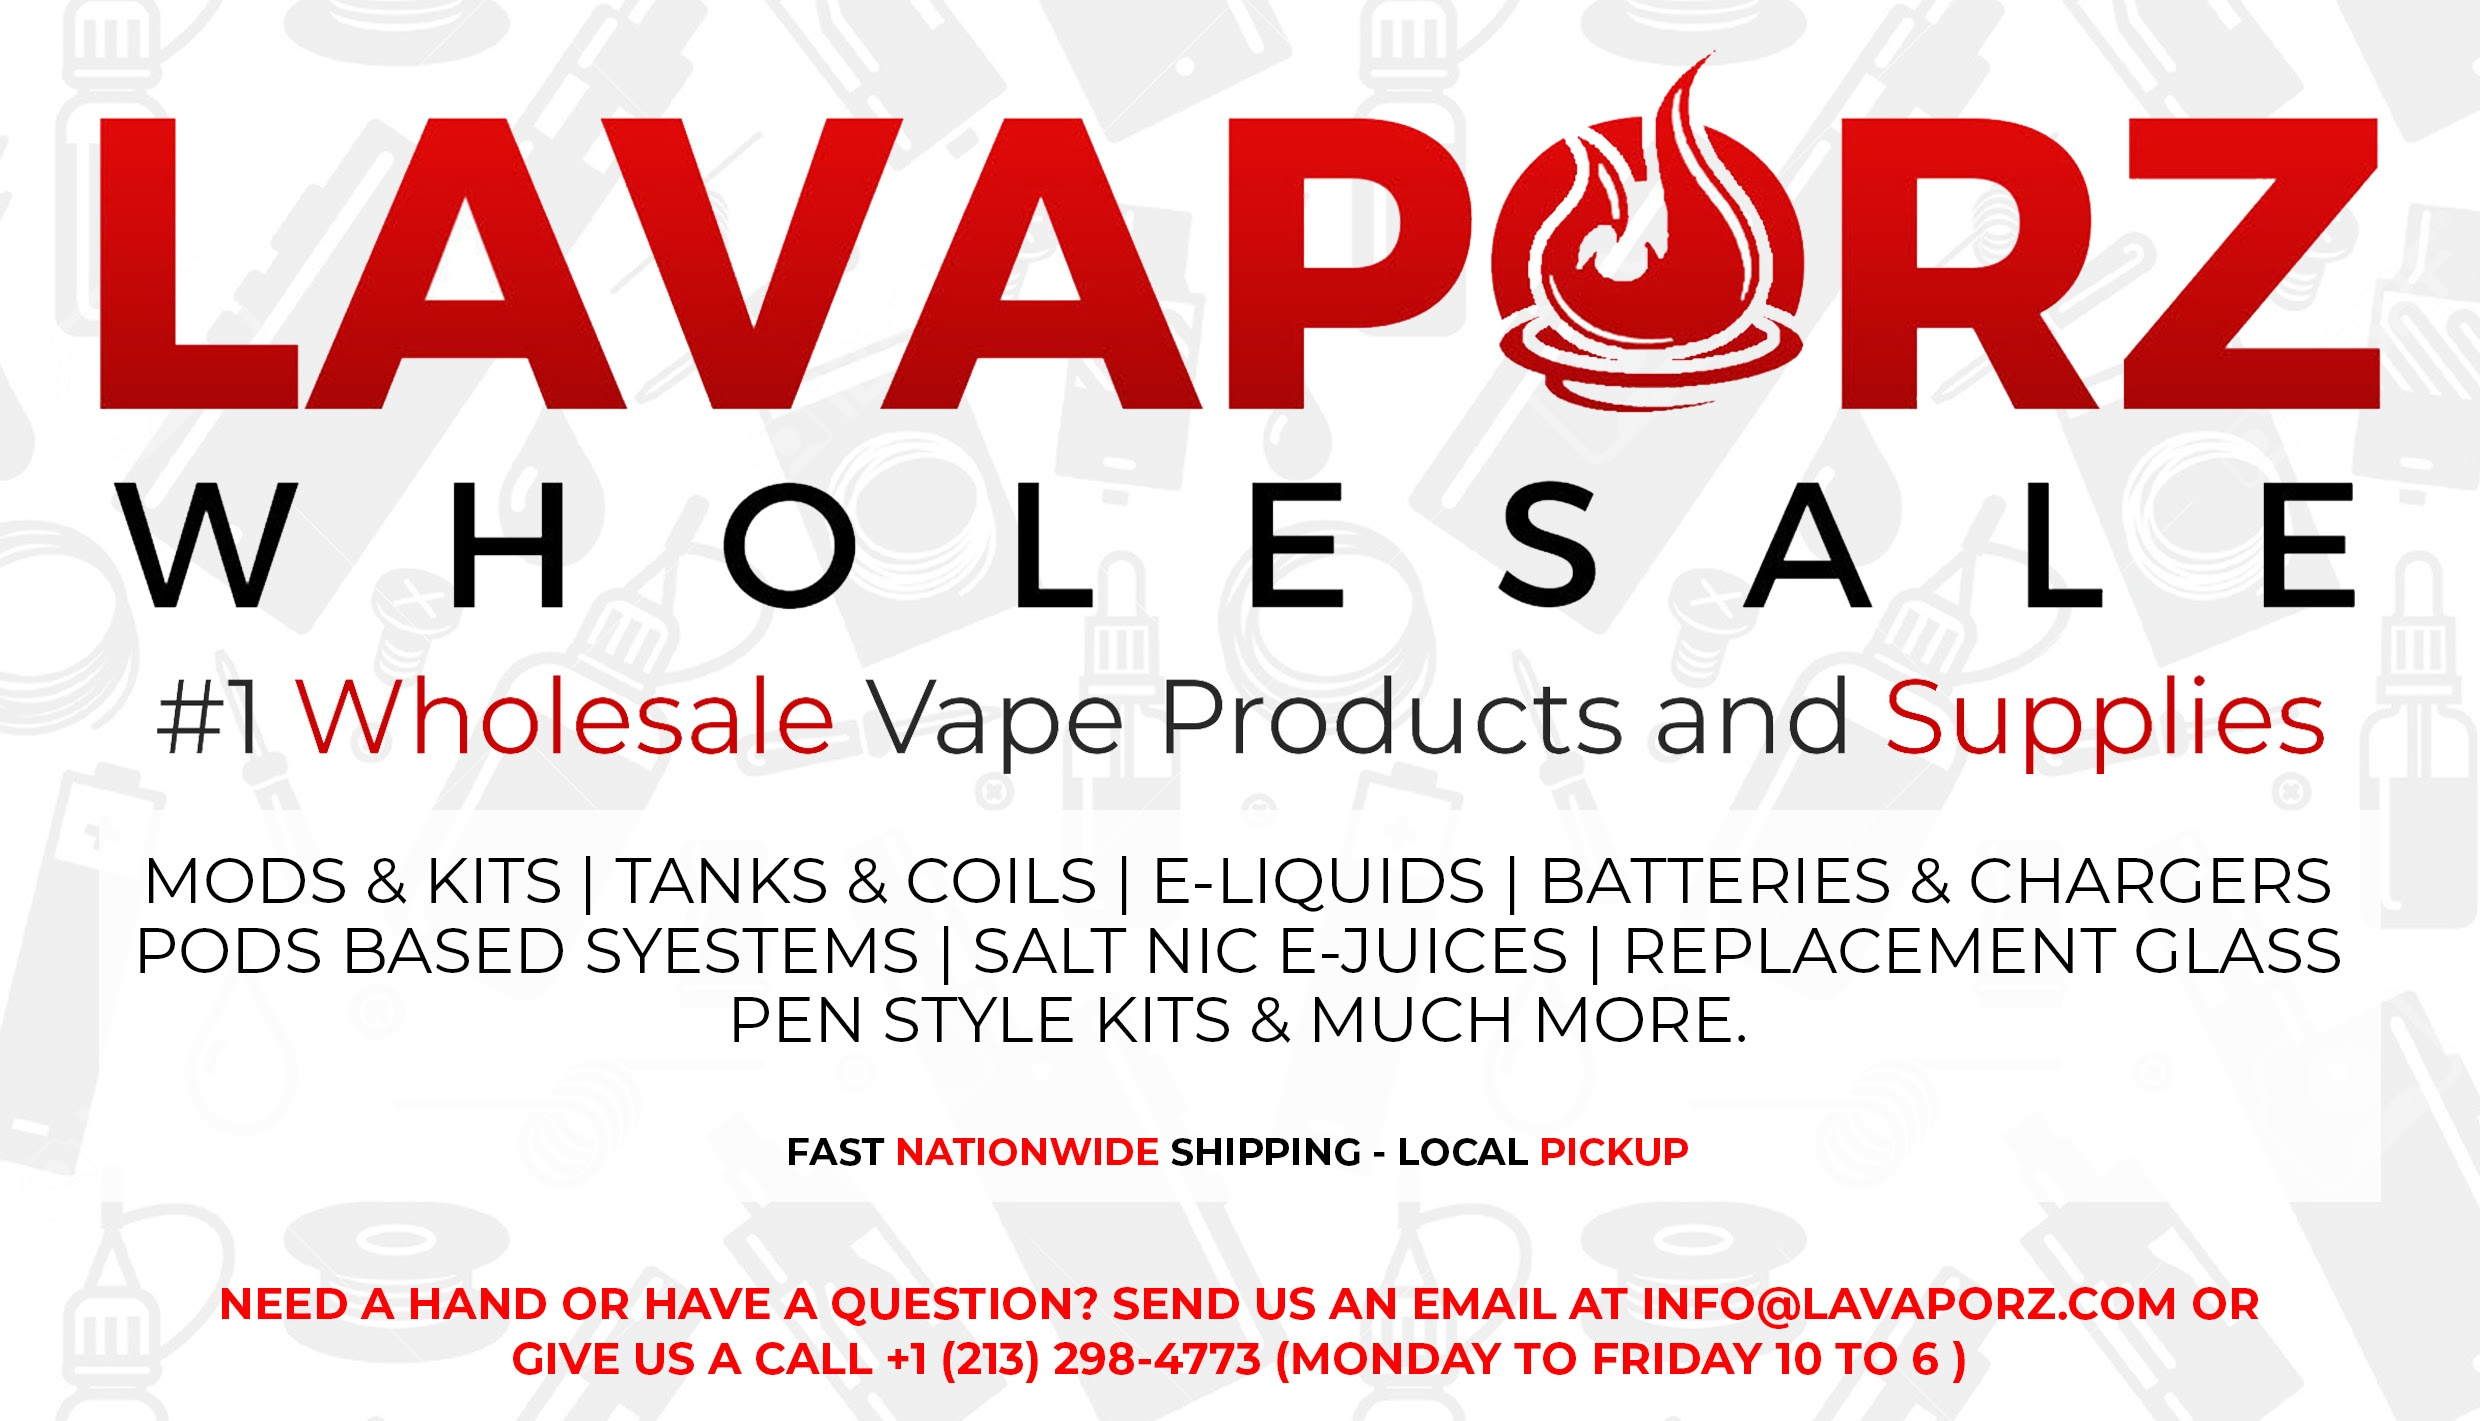 Where can I find wholesale vape suppliers without having to